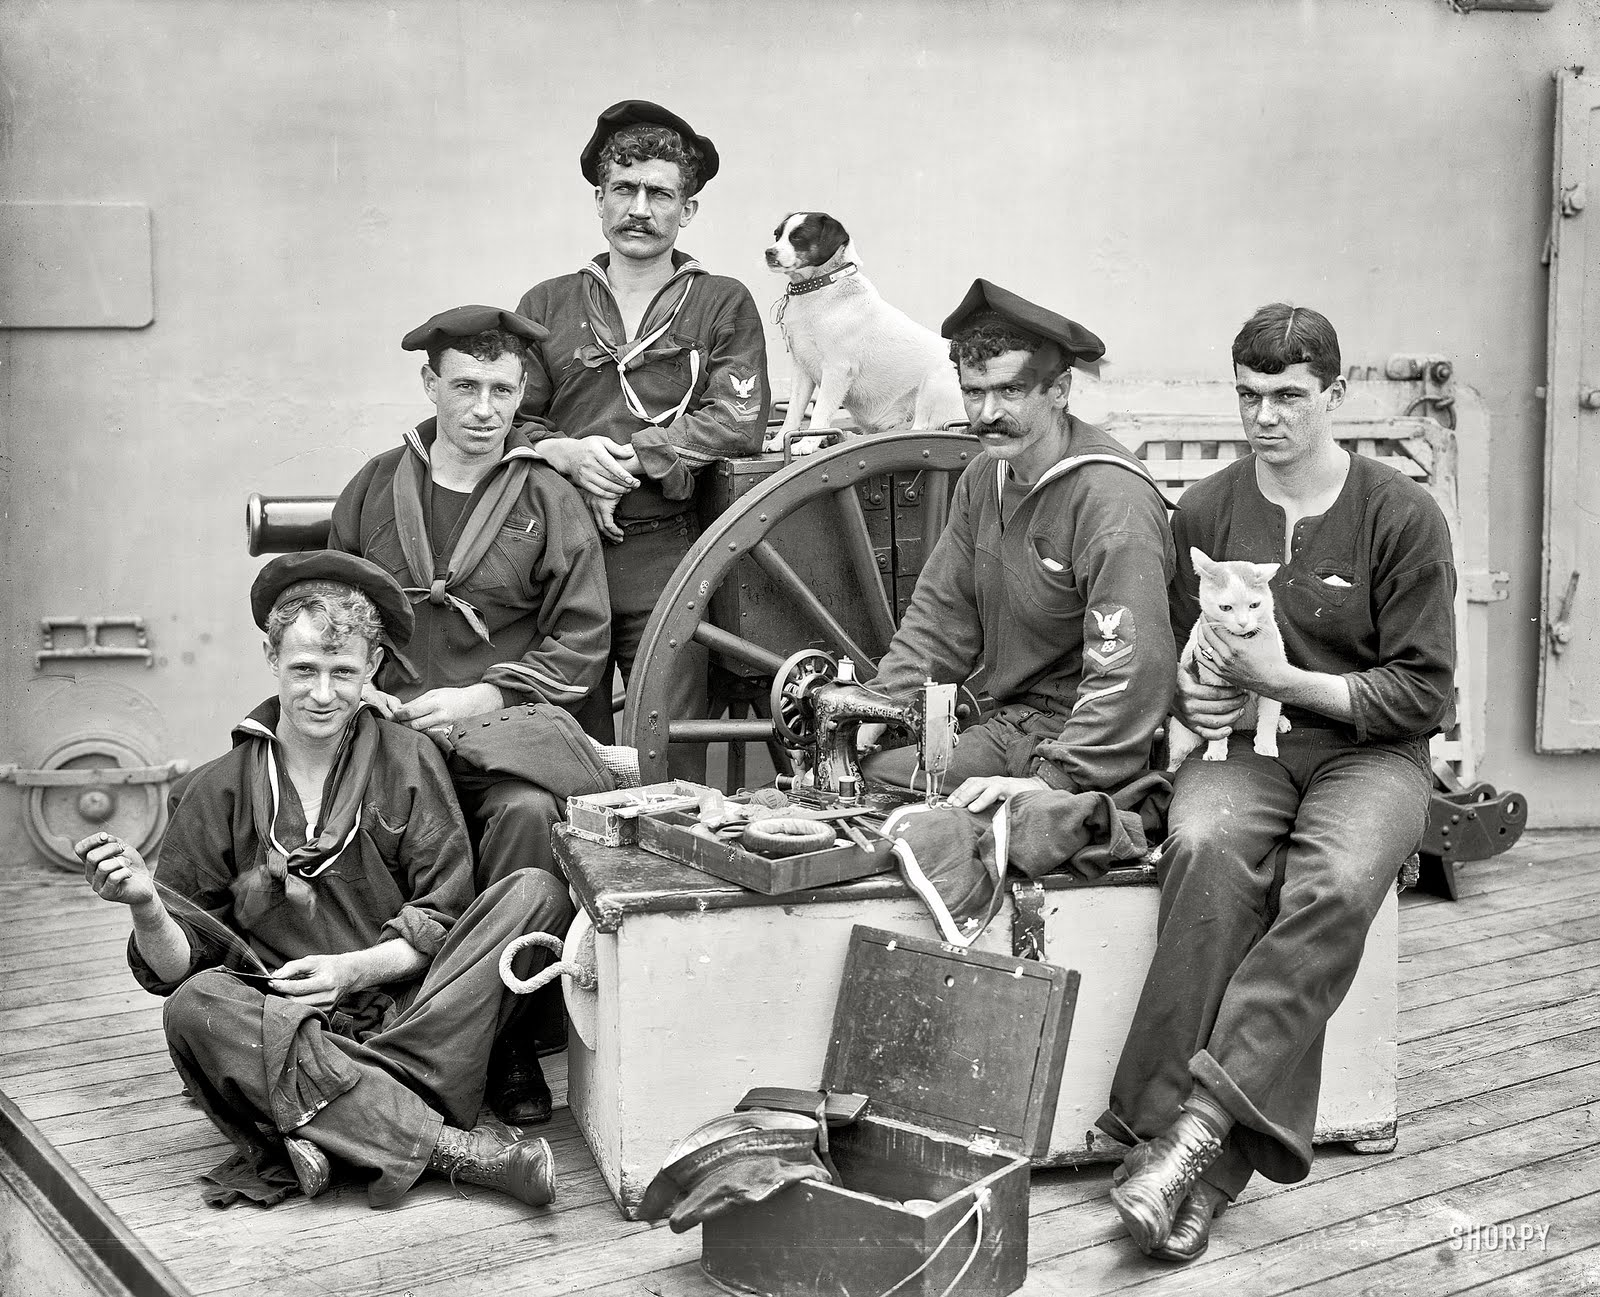 Sewing Sailors